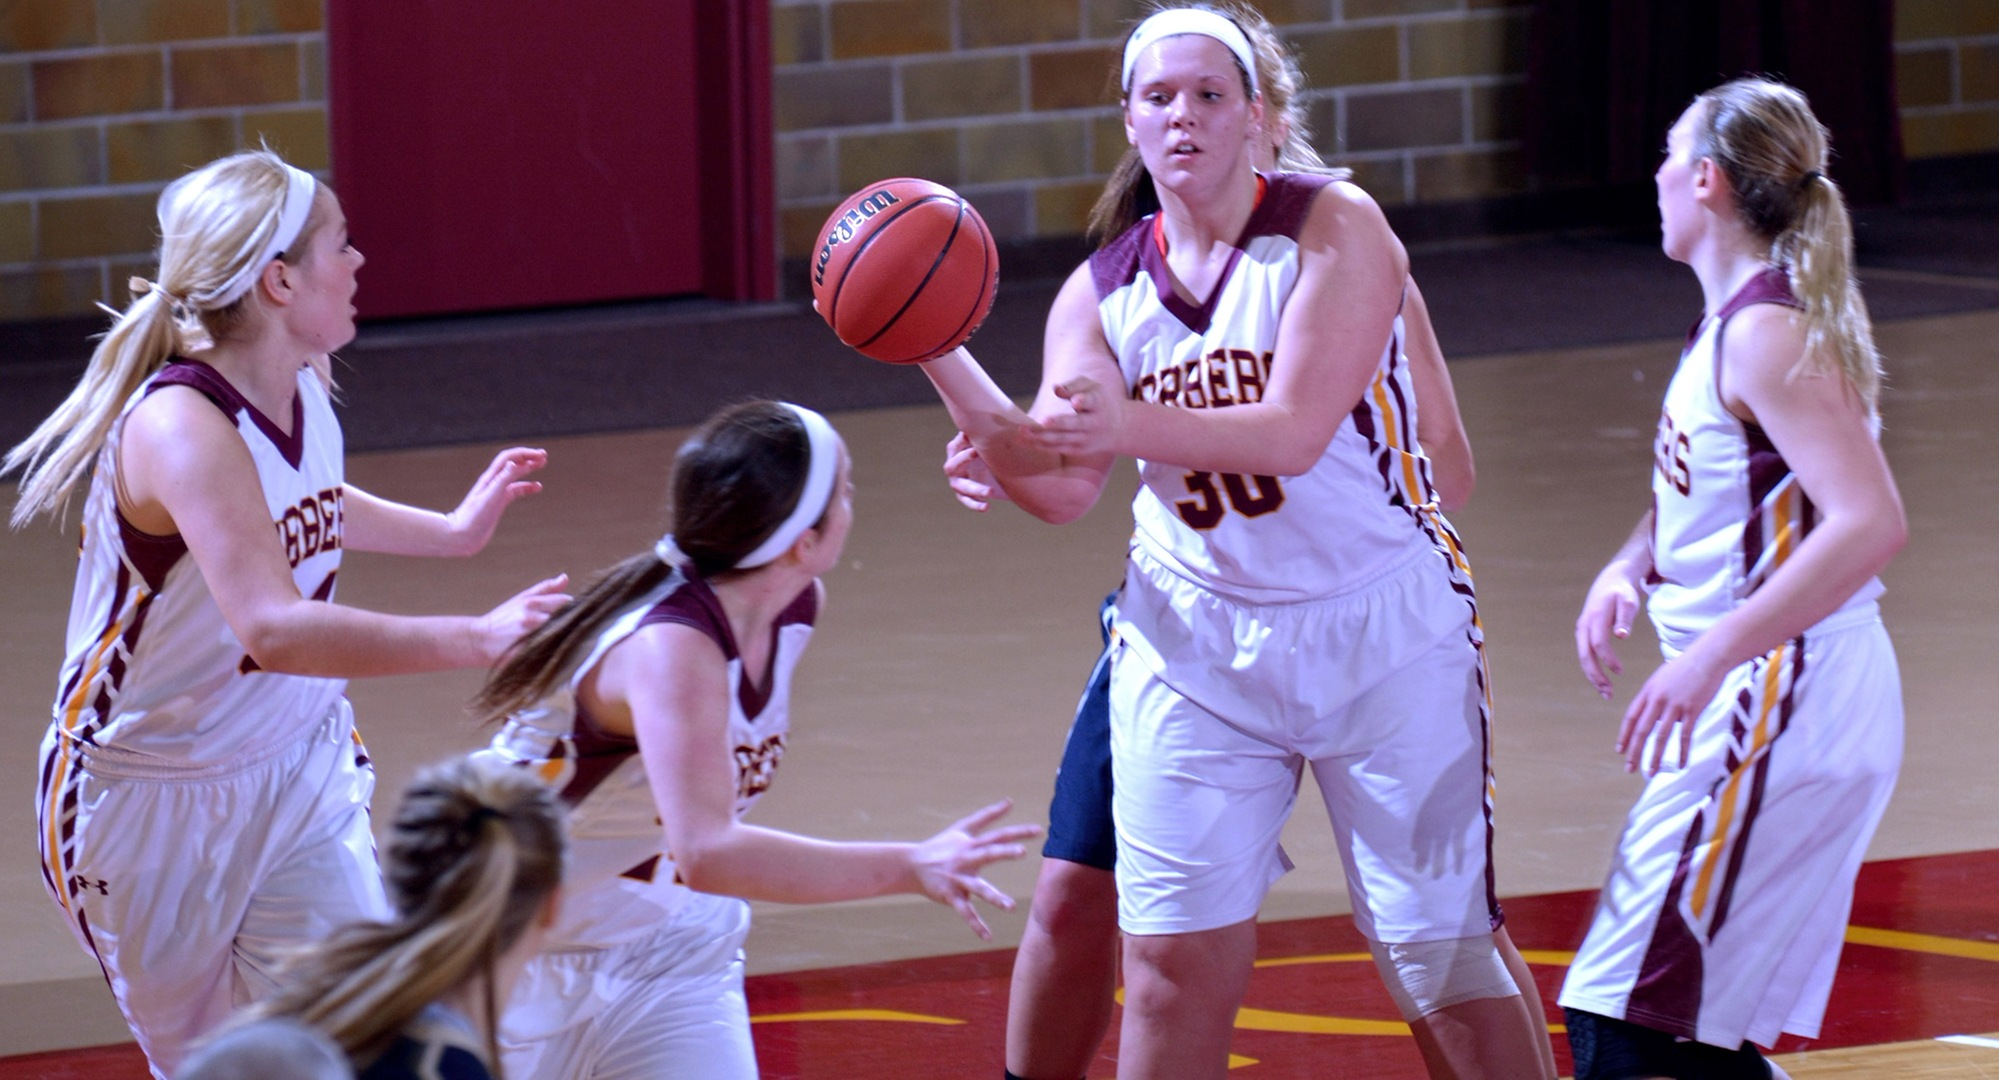 Freshman Shelby Duckstad outlets the ball after grabbing one of her career-high five rebounds. She also scored a career-high 16 points in the Cobbers' game with Bethel.